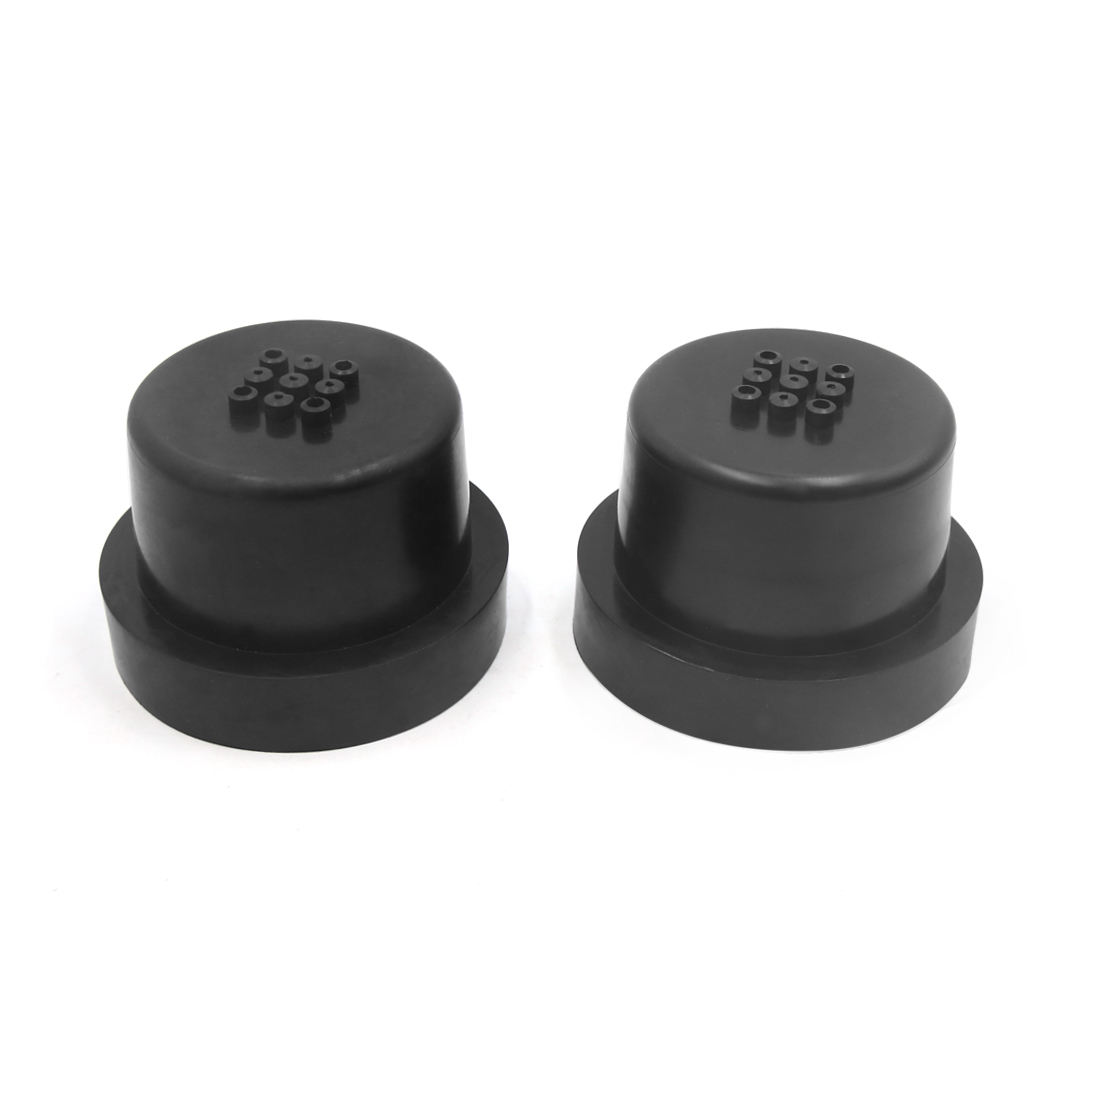 2Pcs 90mm Dia Rubber Housing Seal Cap Dust Cover for Car LED HID Headlight